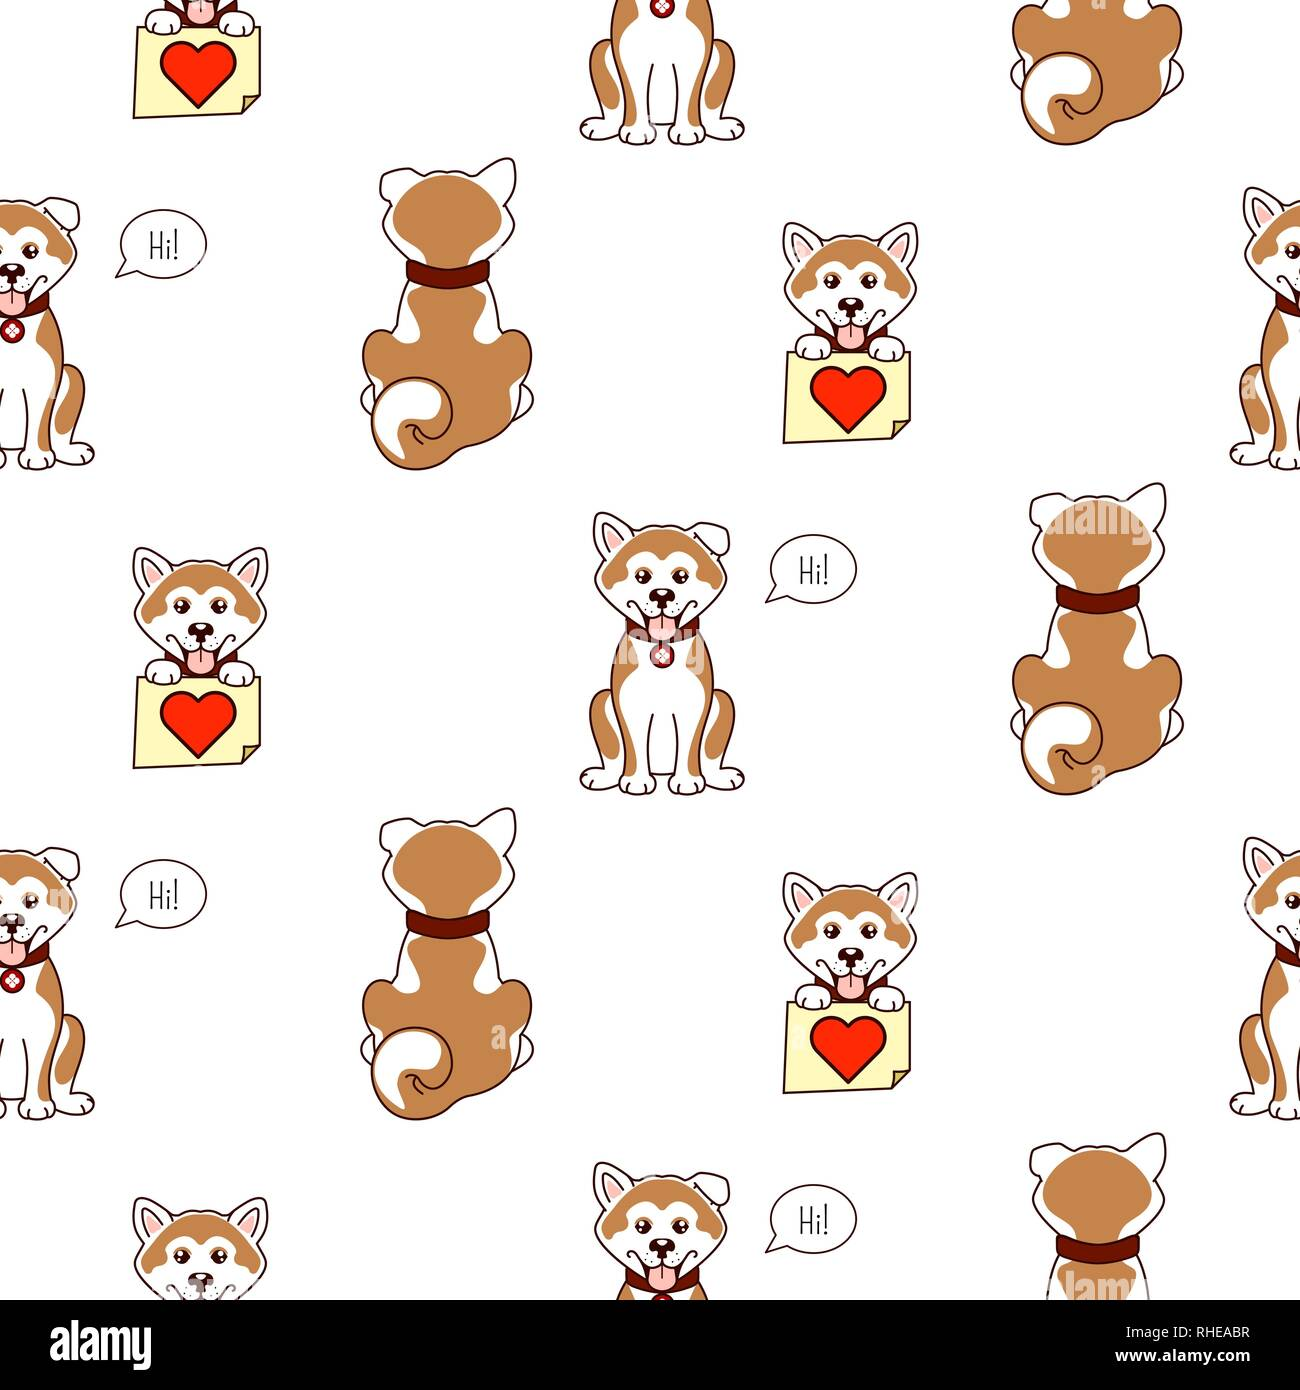 Shiba Inu Dog Cute Pattern Vector Background Stock Vector Image Art Alamy